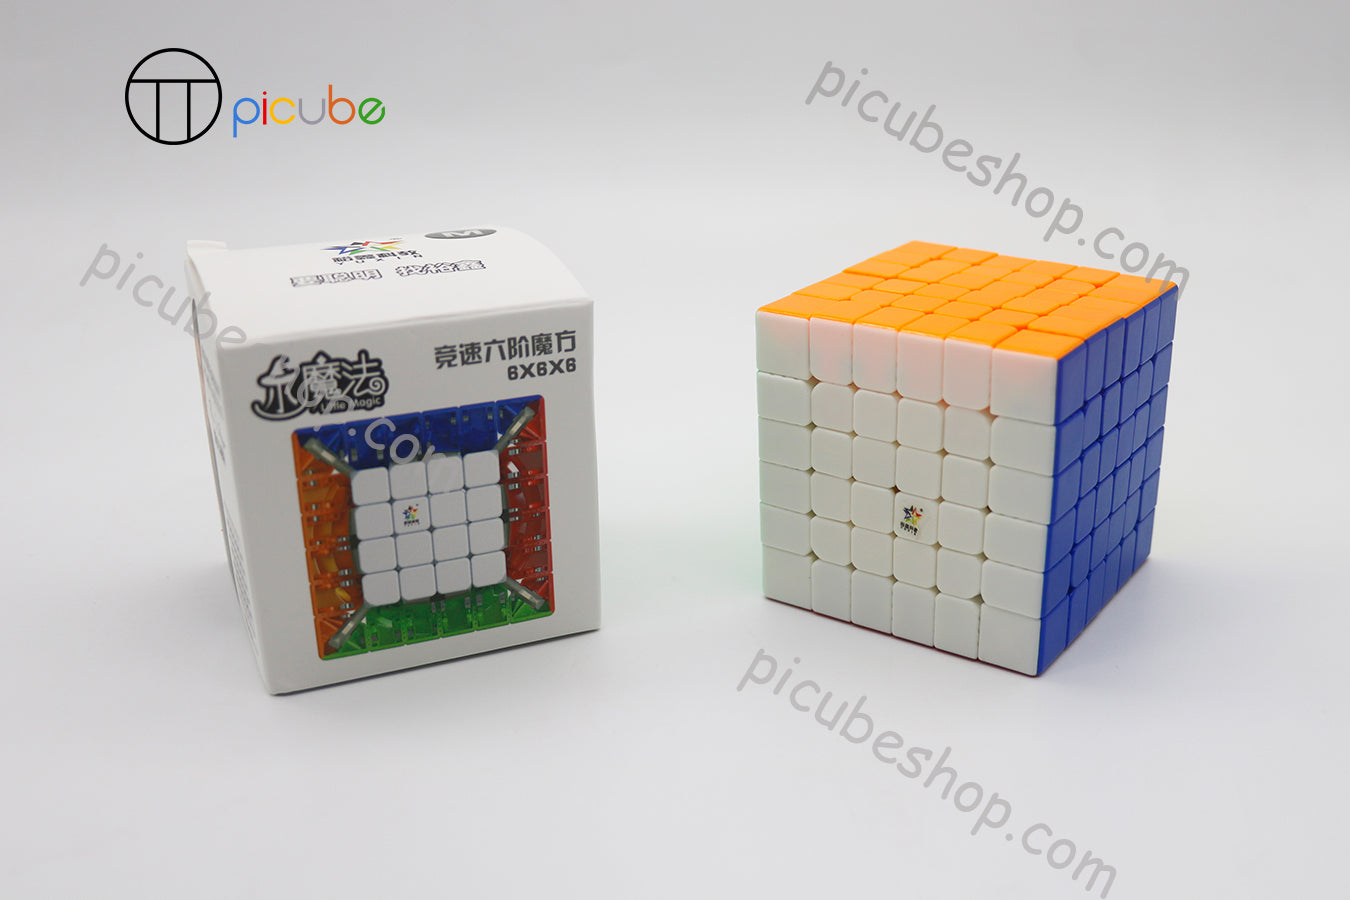 Picube Little Magic 6 M 6x6